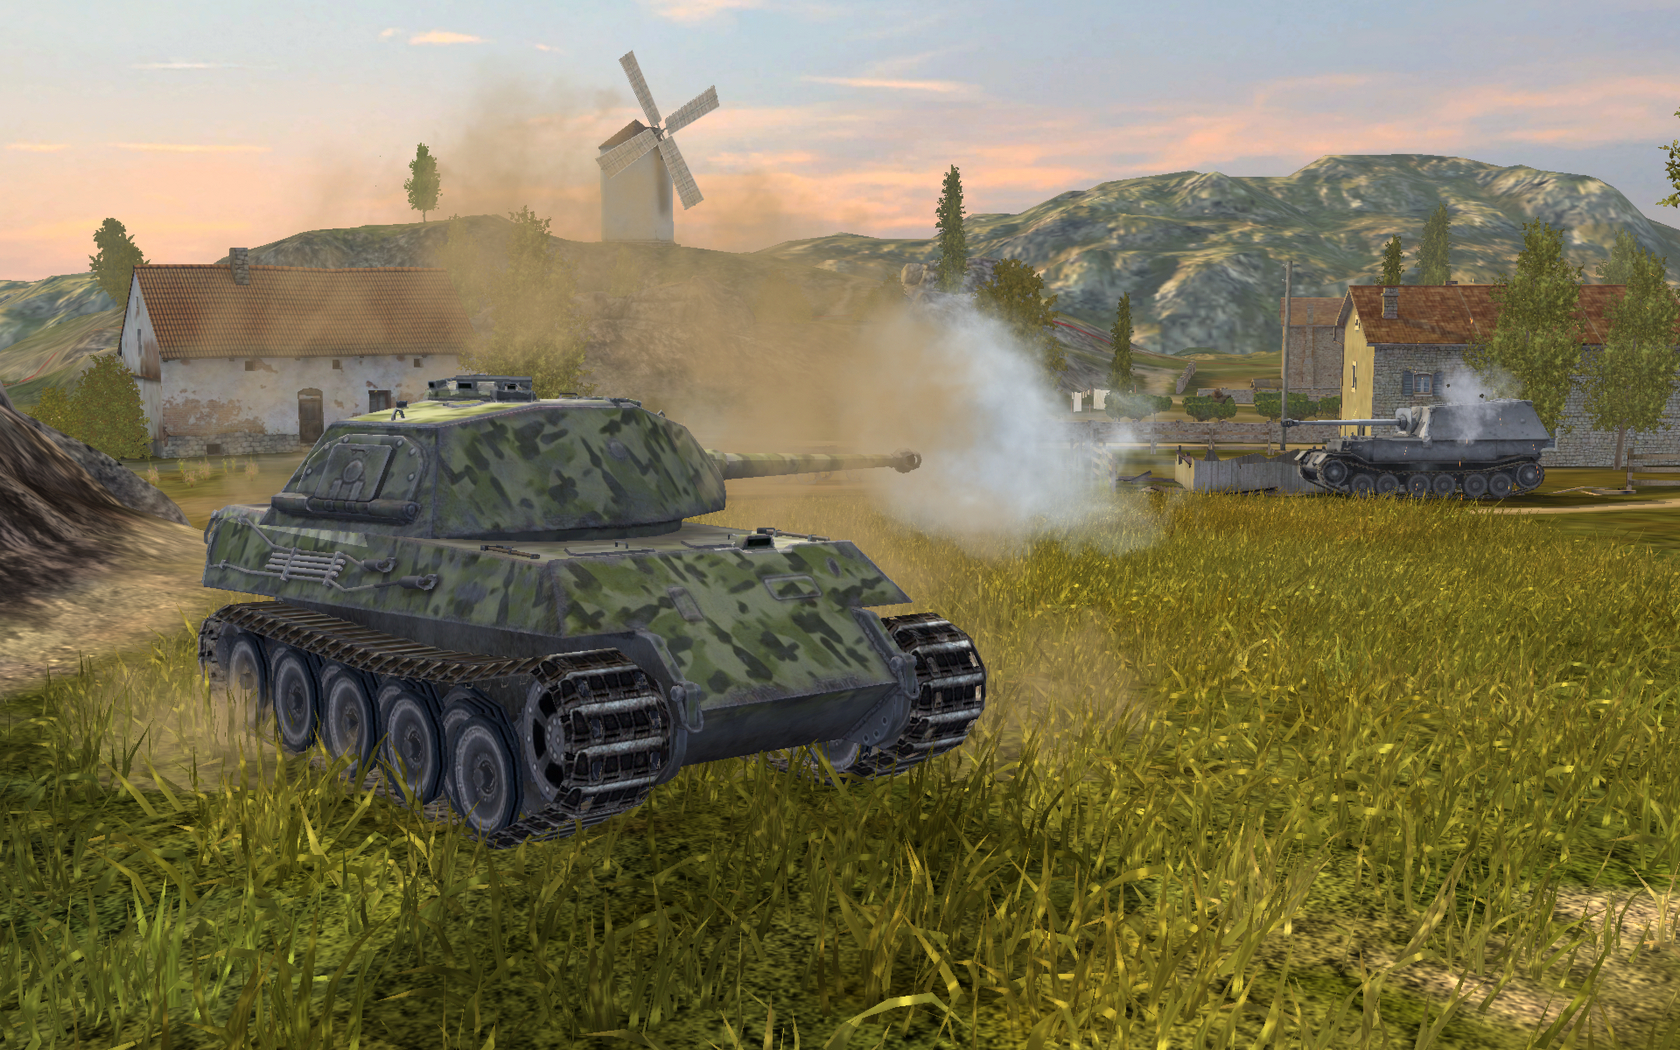 Team-killing is punished in World of Tanks - but that doesn't always stop it.